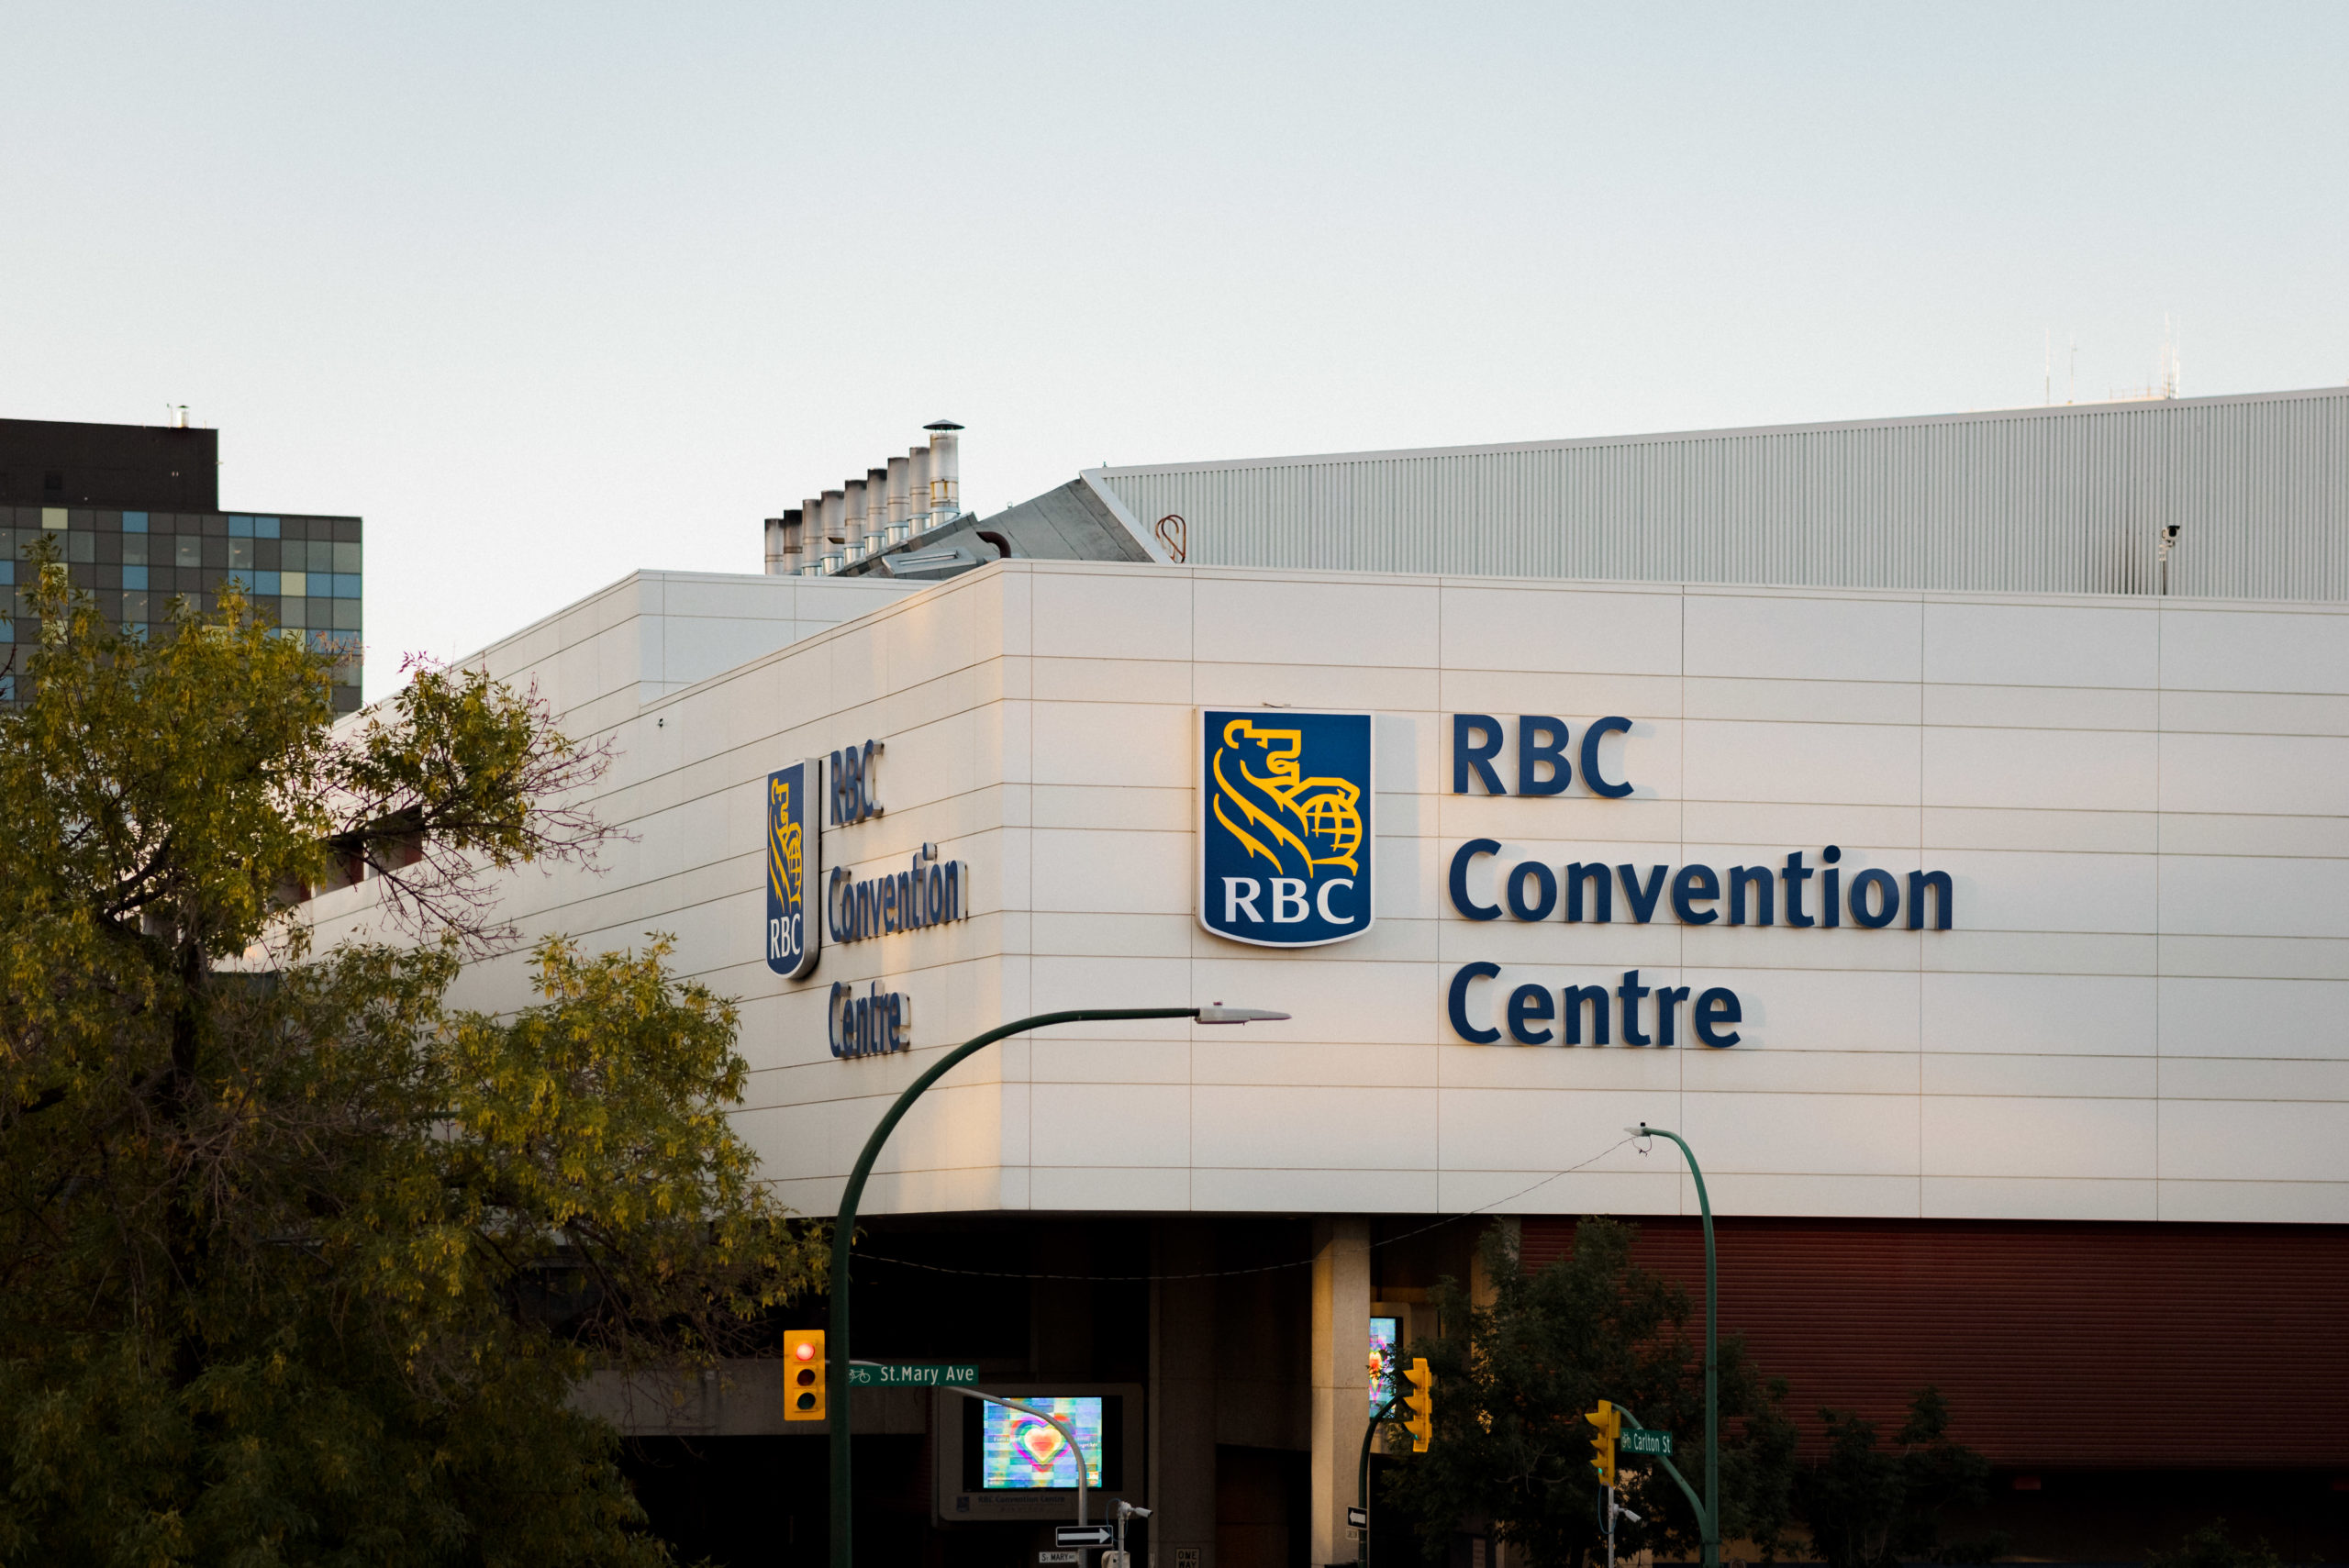 15 cool spots to visit within 5 minutes of the RBC Convention Centre